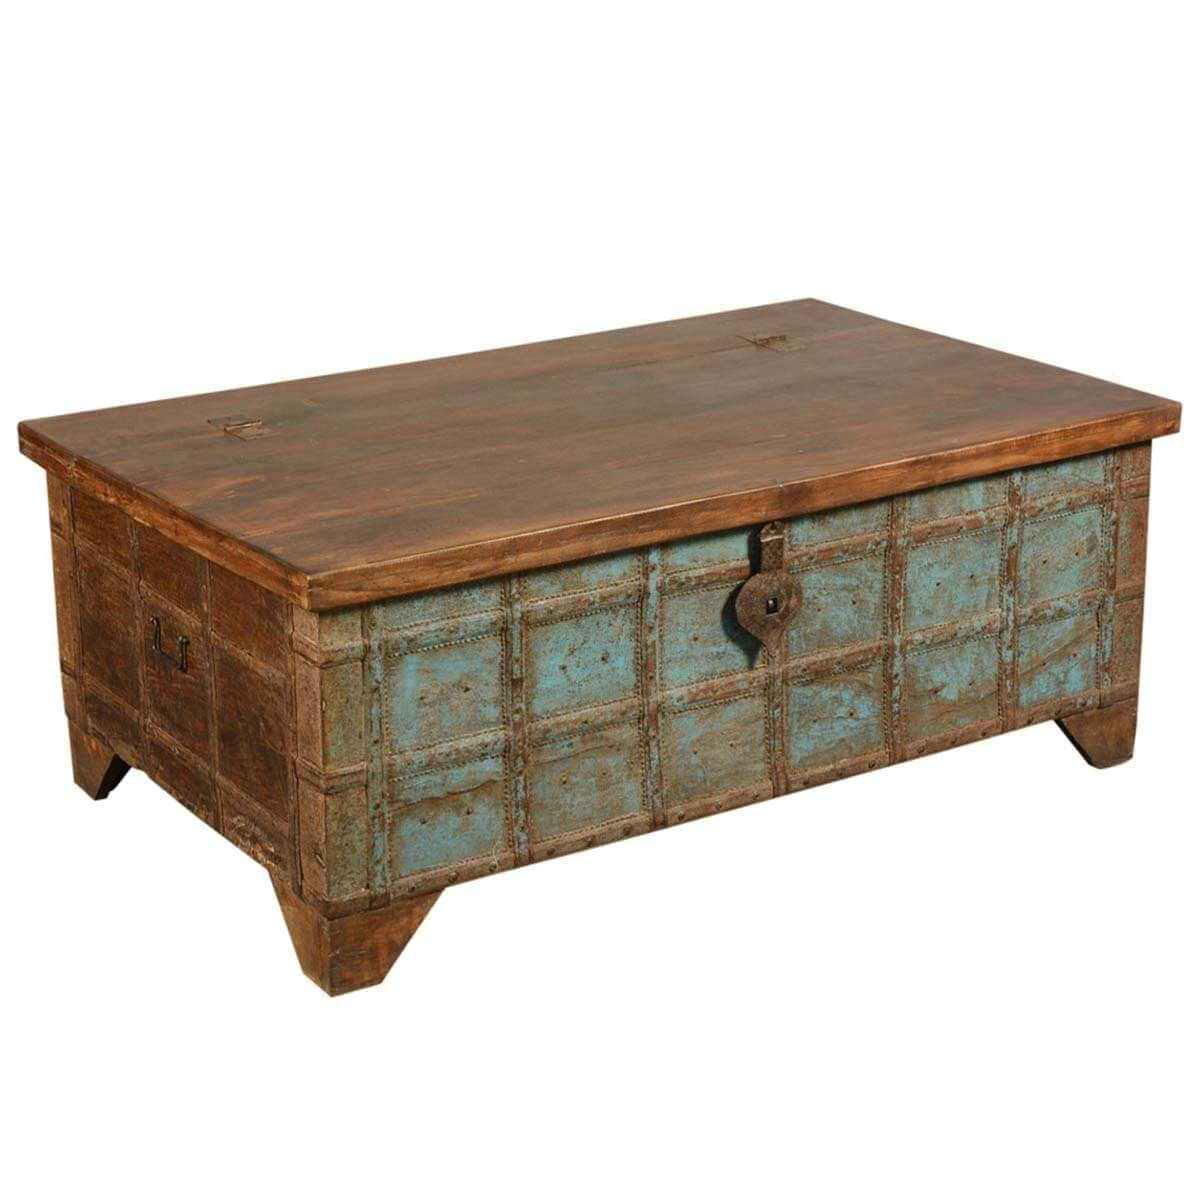 captain 39 s stash reclaimed wood coffee table storage chest trunk. Black Bedroom Furniture Sets. Home Design Ideas